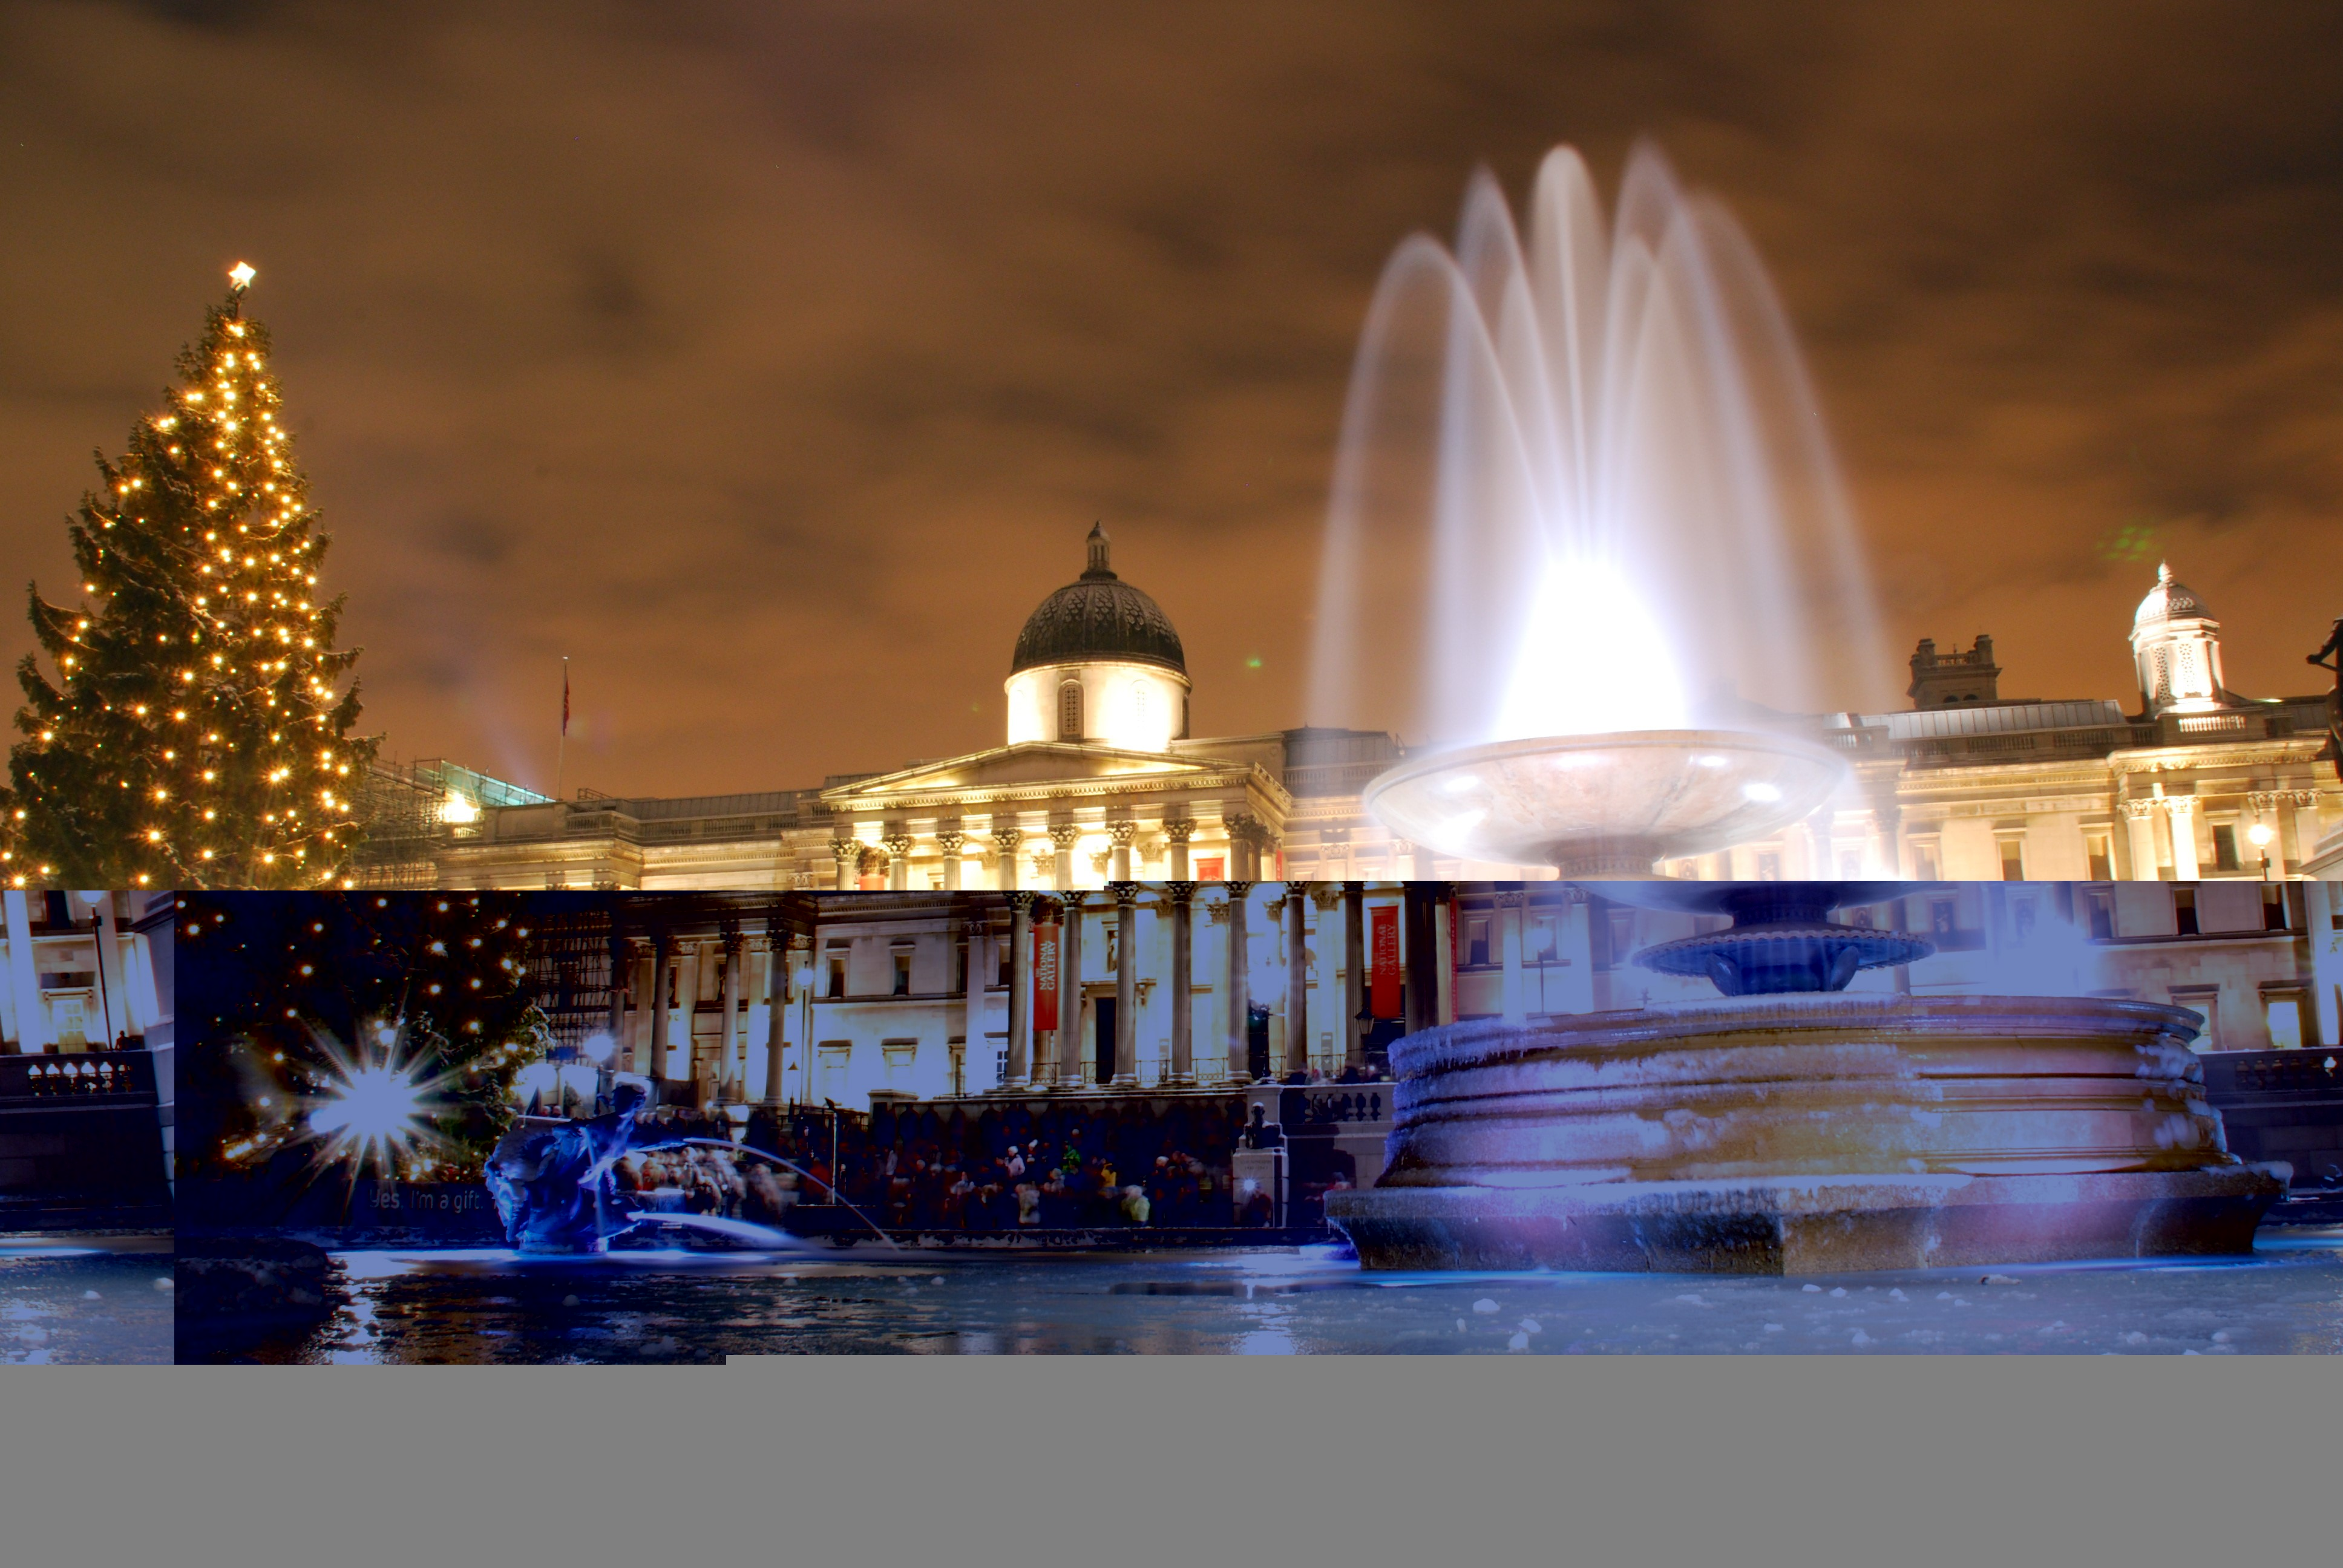 Image of Trafalgur Square